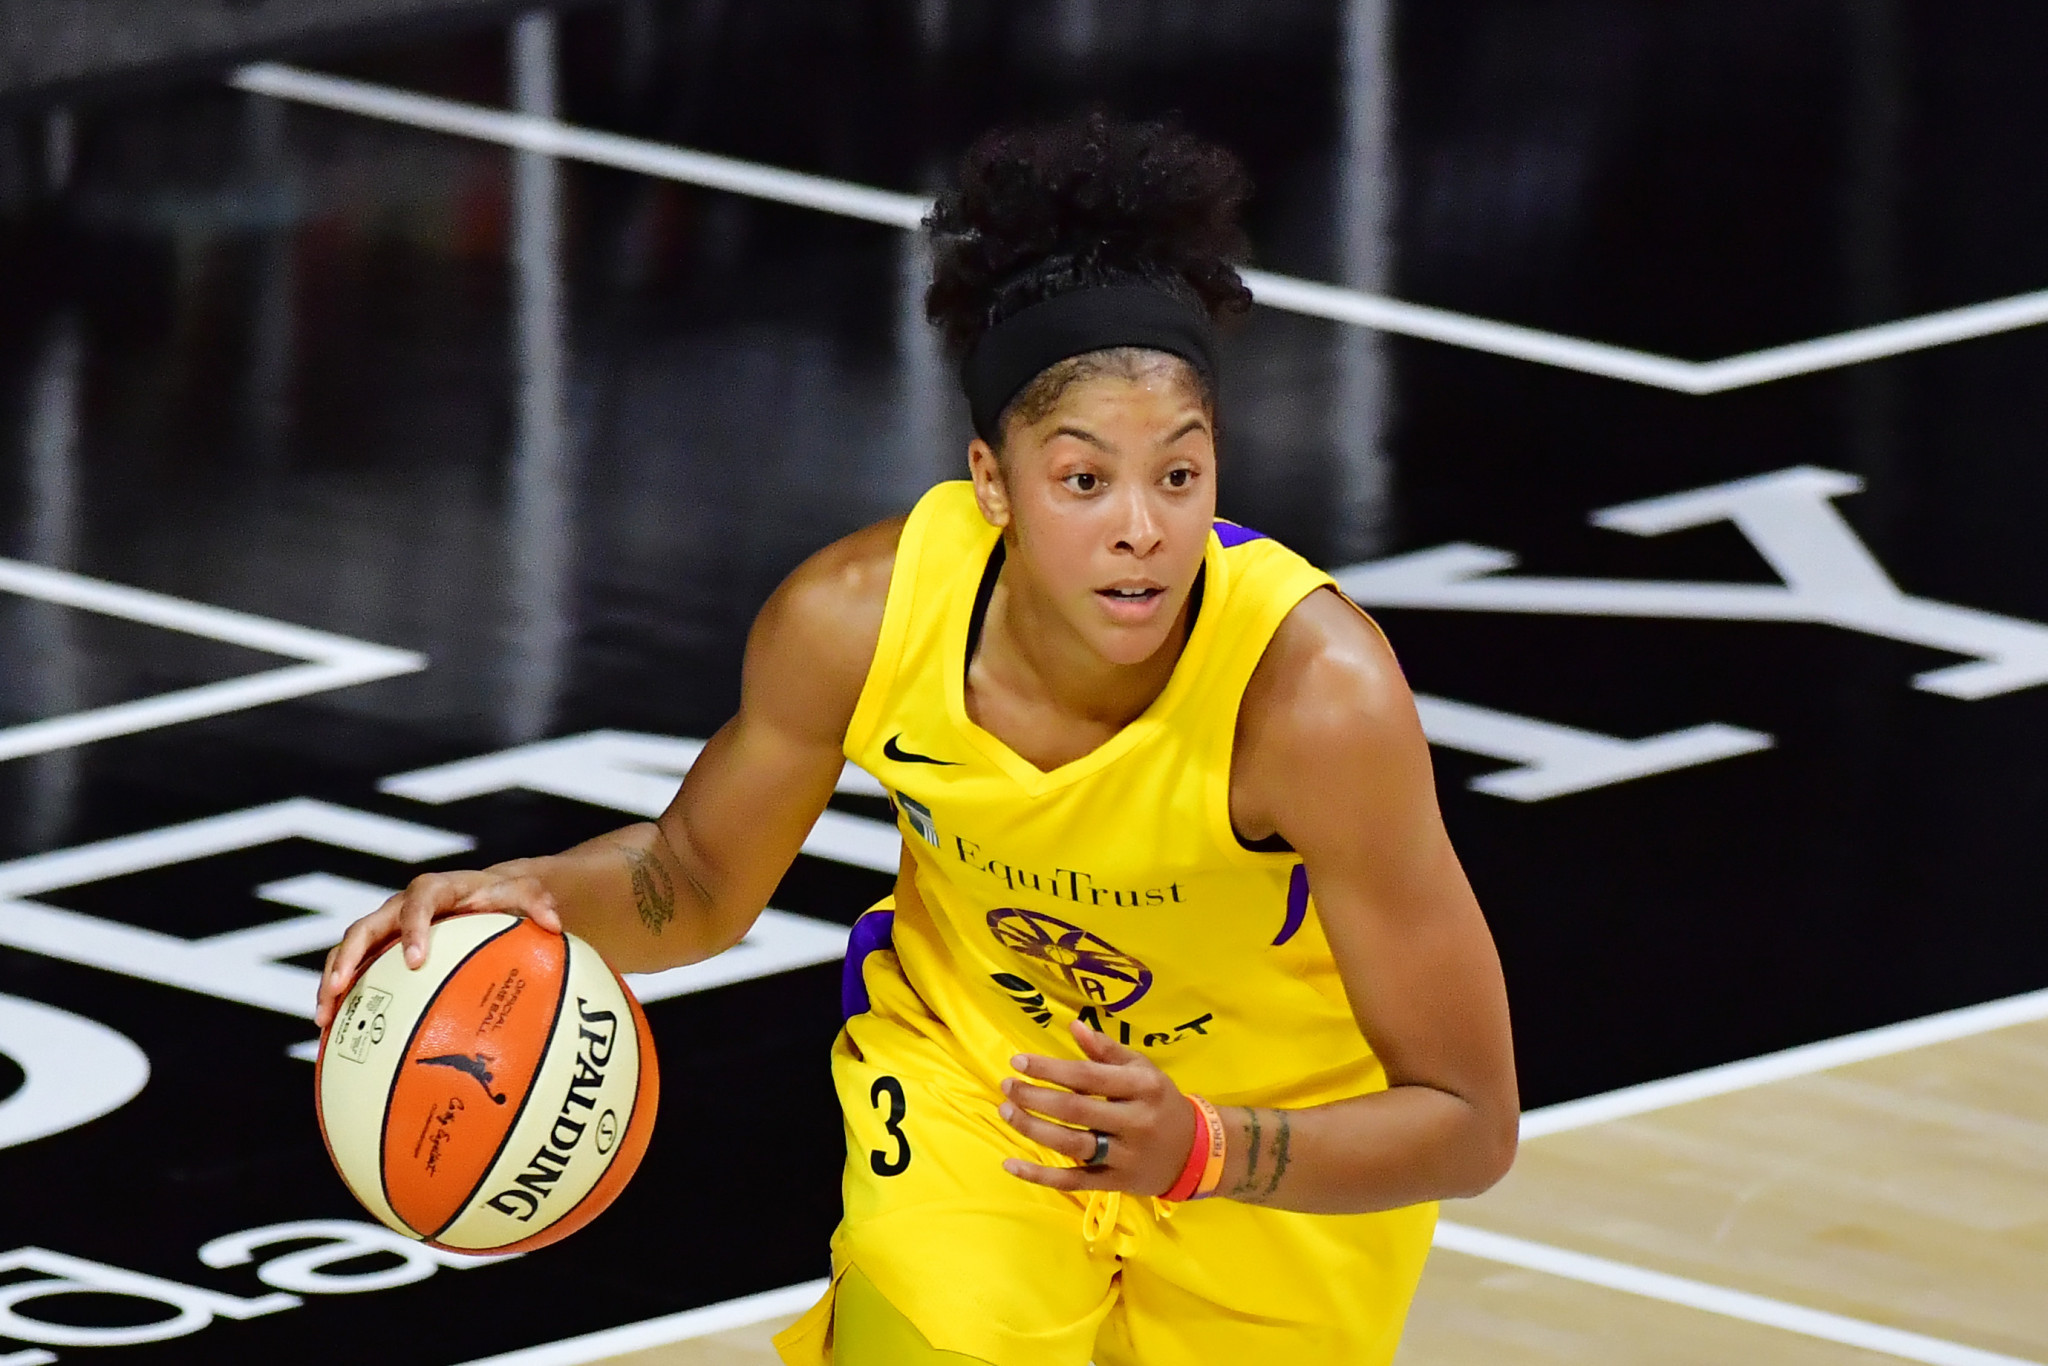 Two-time Olympic basketball champion Candace Parker is among the athlete signatories ©Getty Images